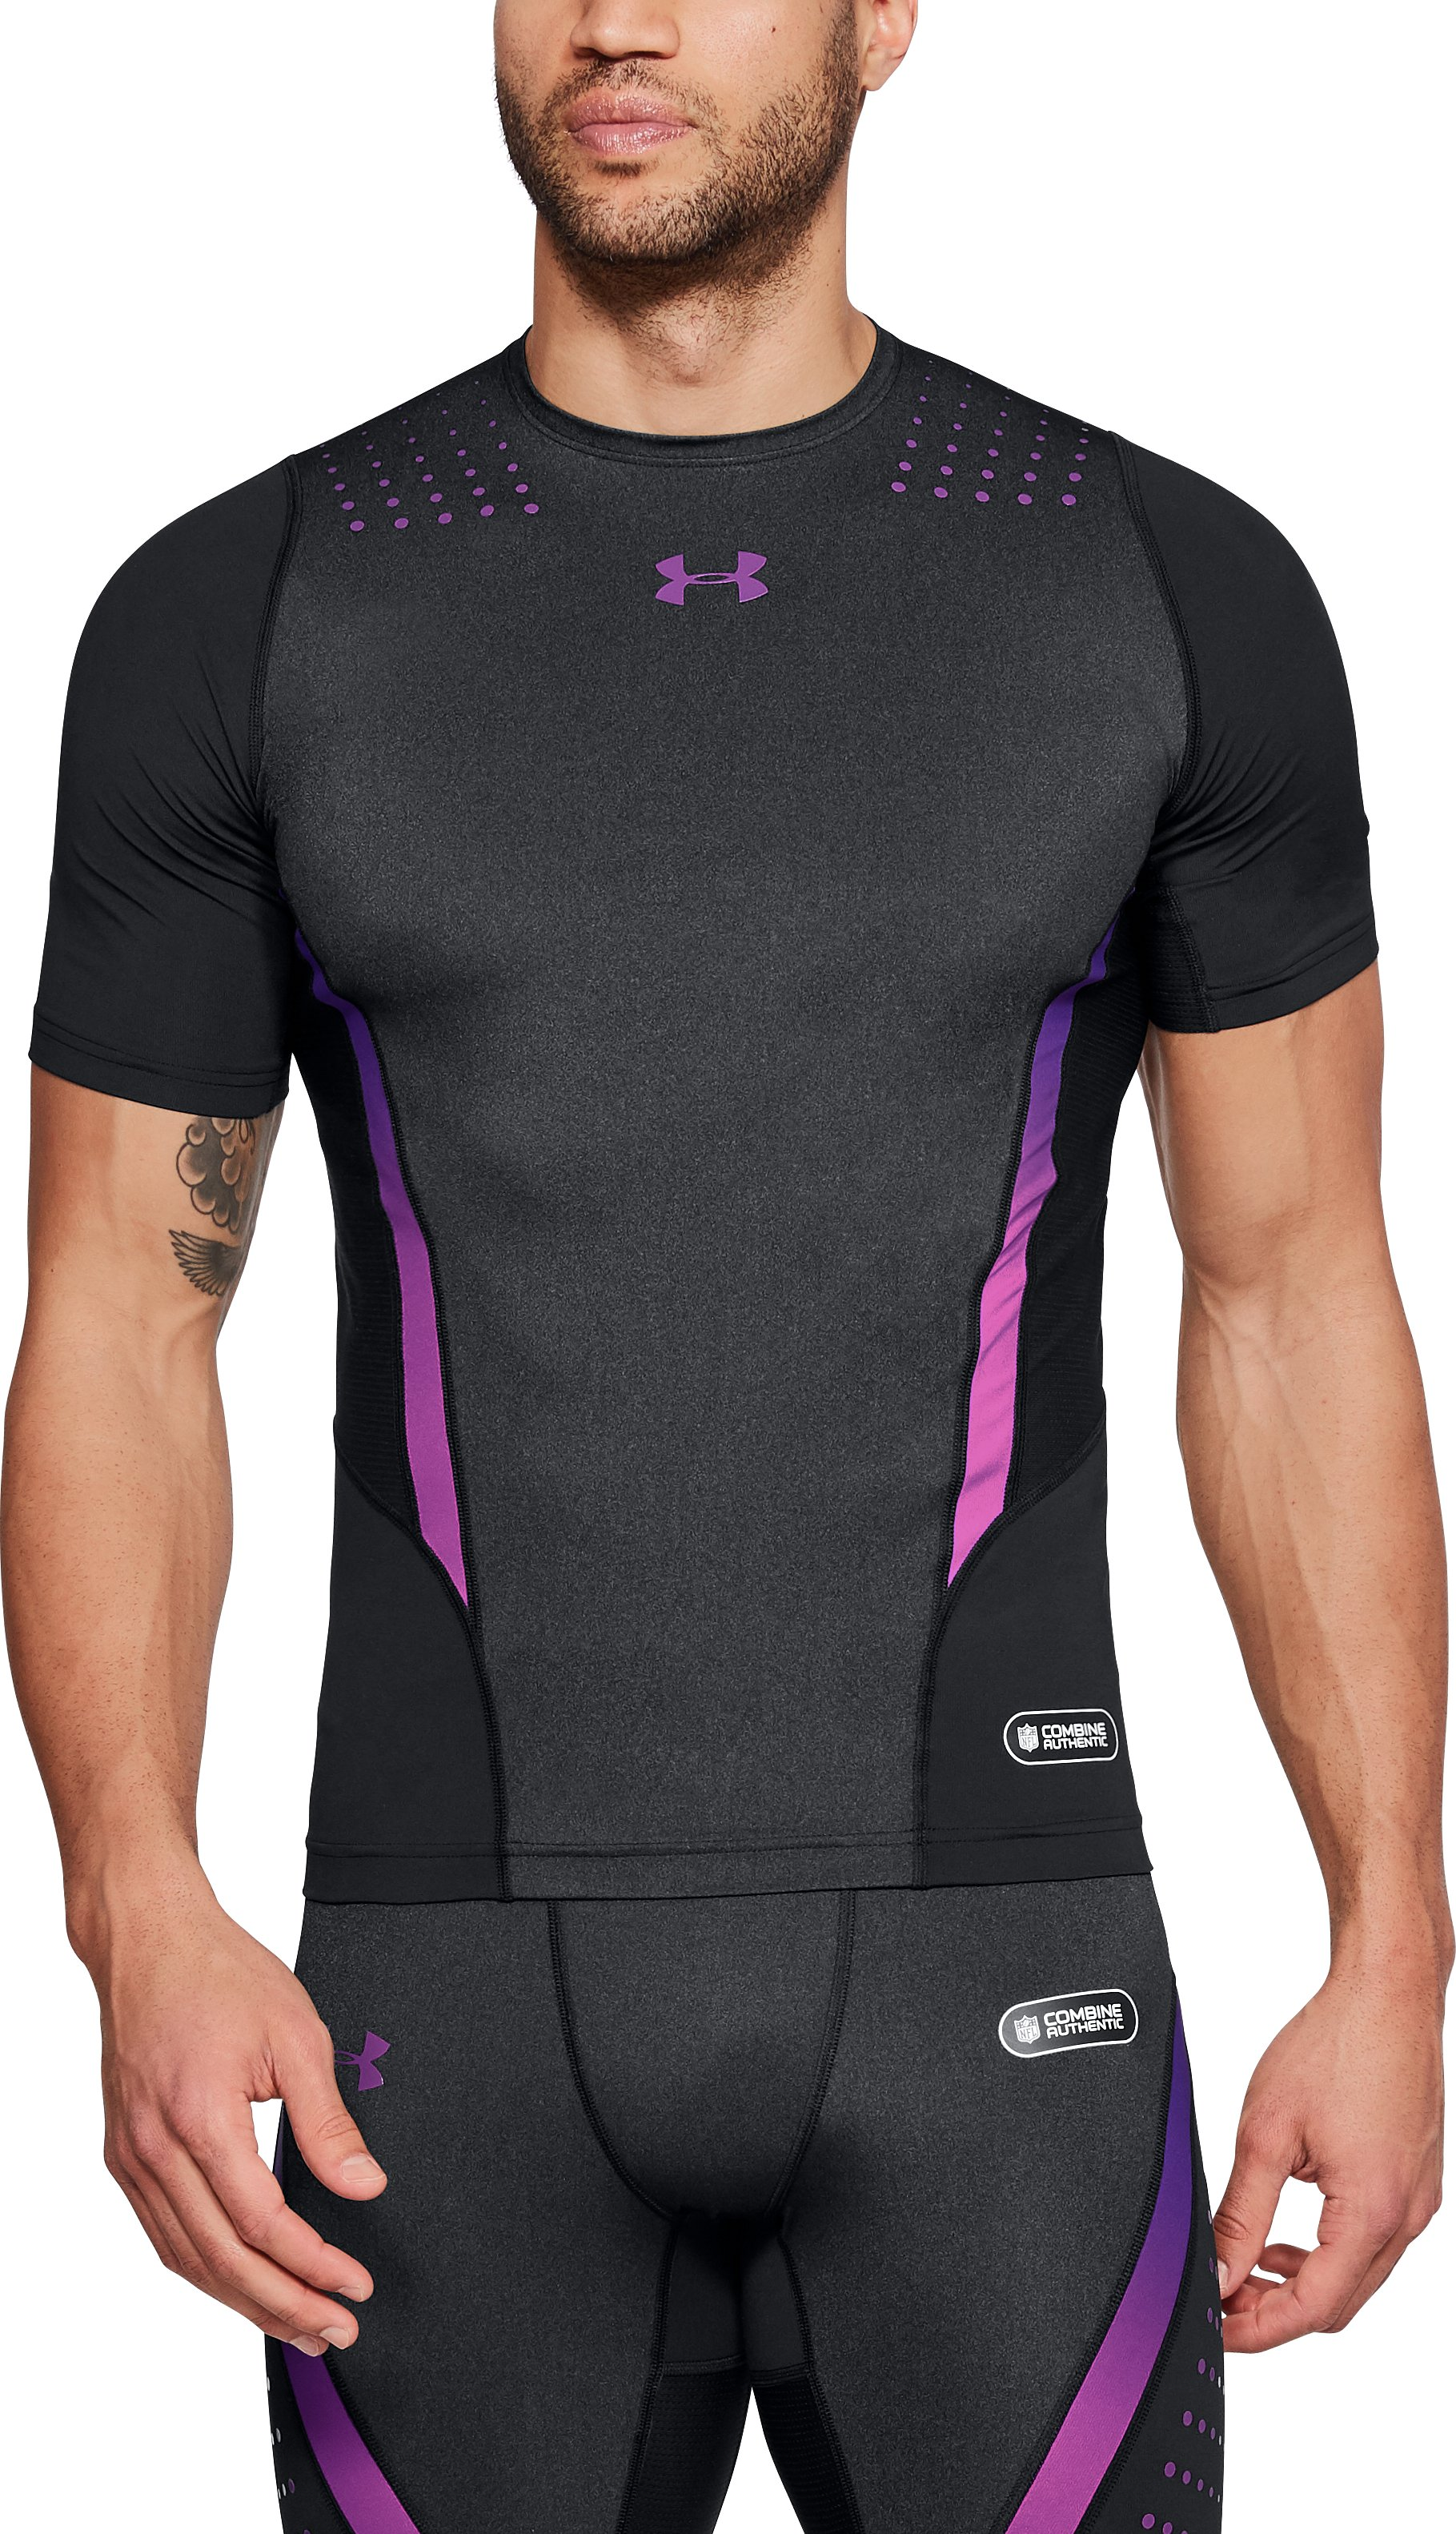 Men's NFL Combine Authentic Event Compression Short Sleeve, Black